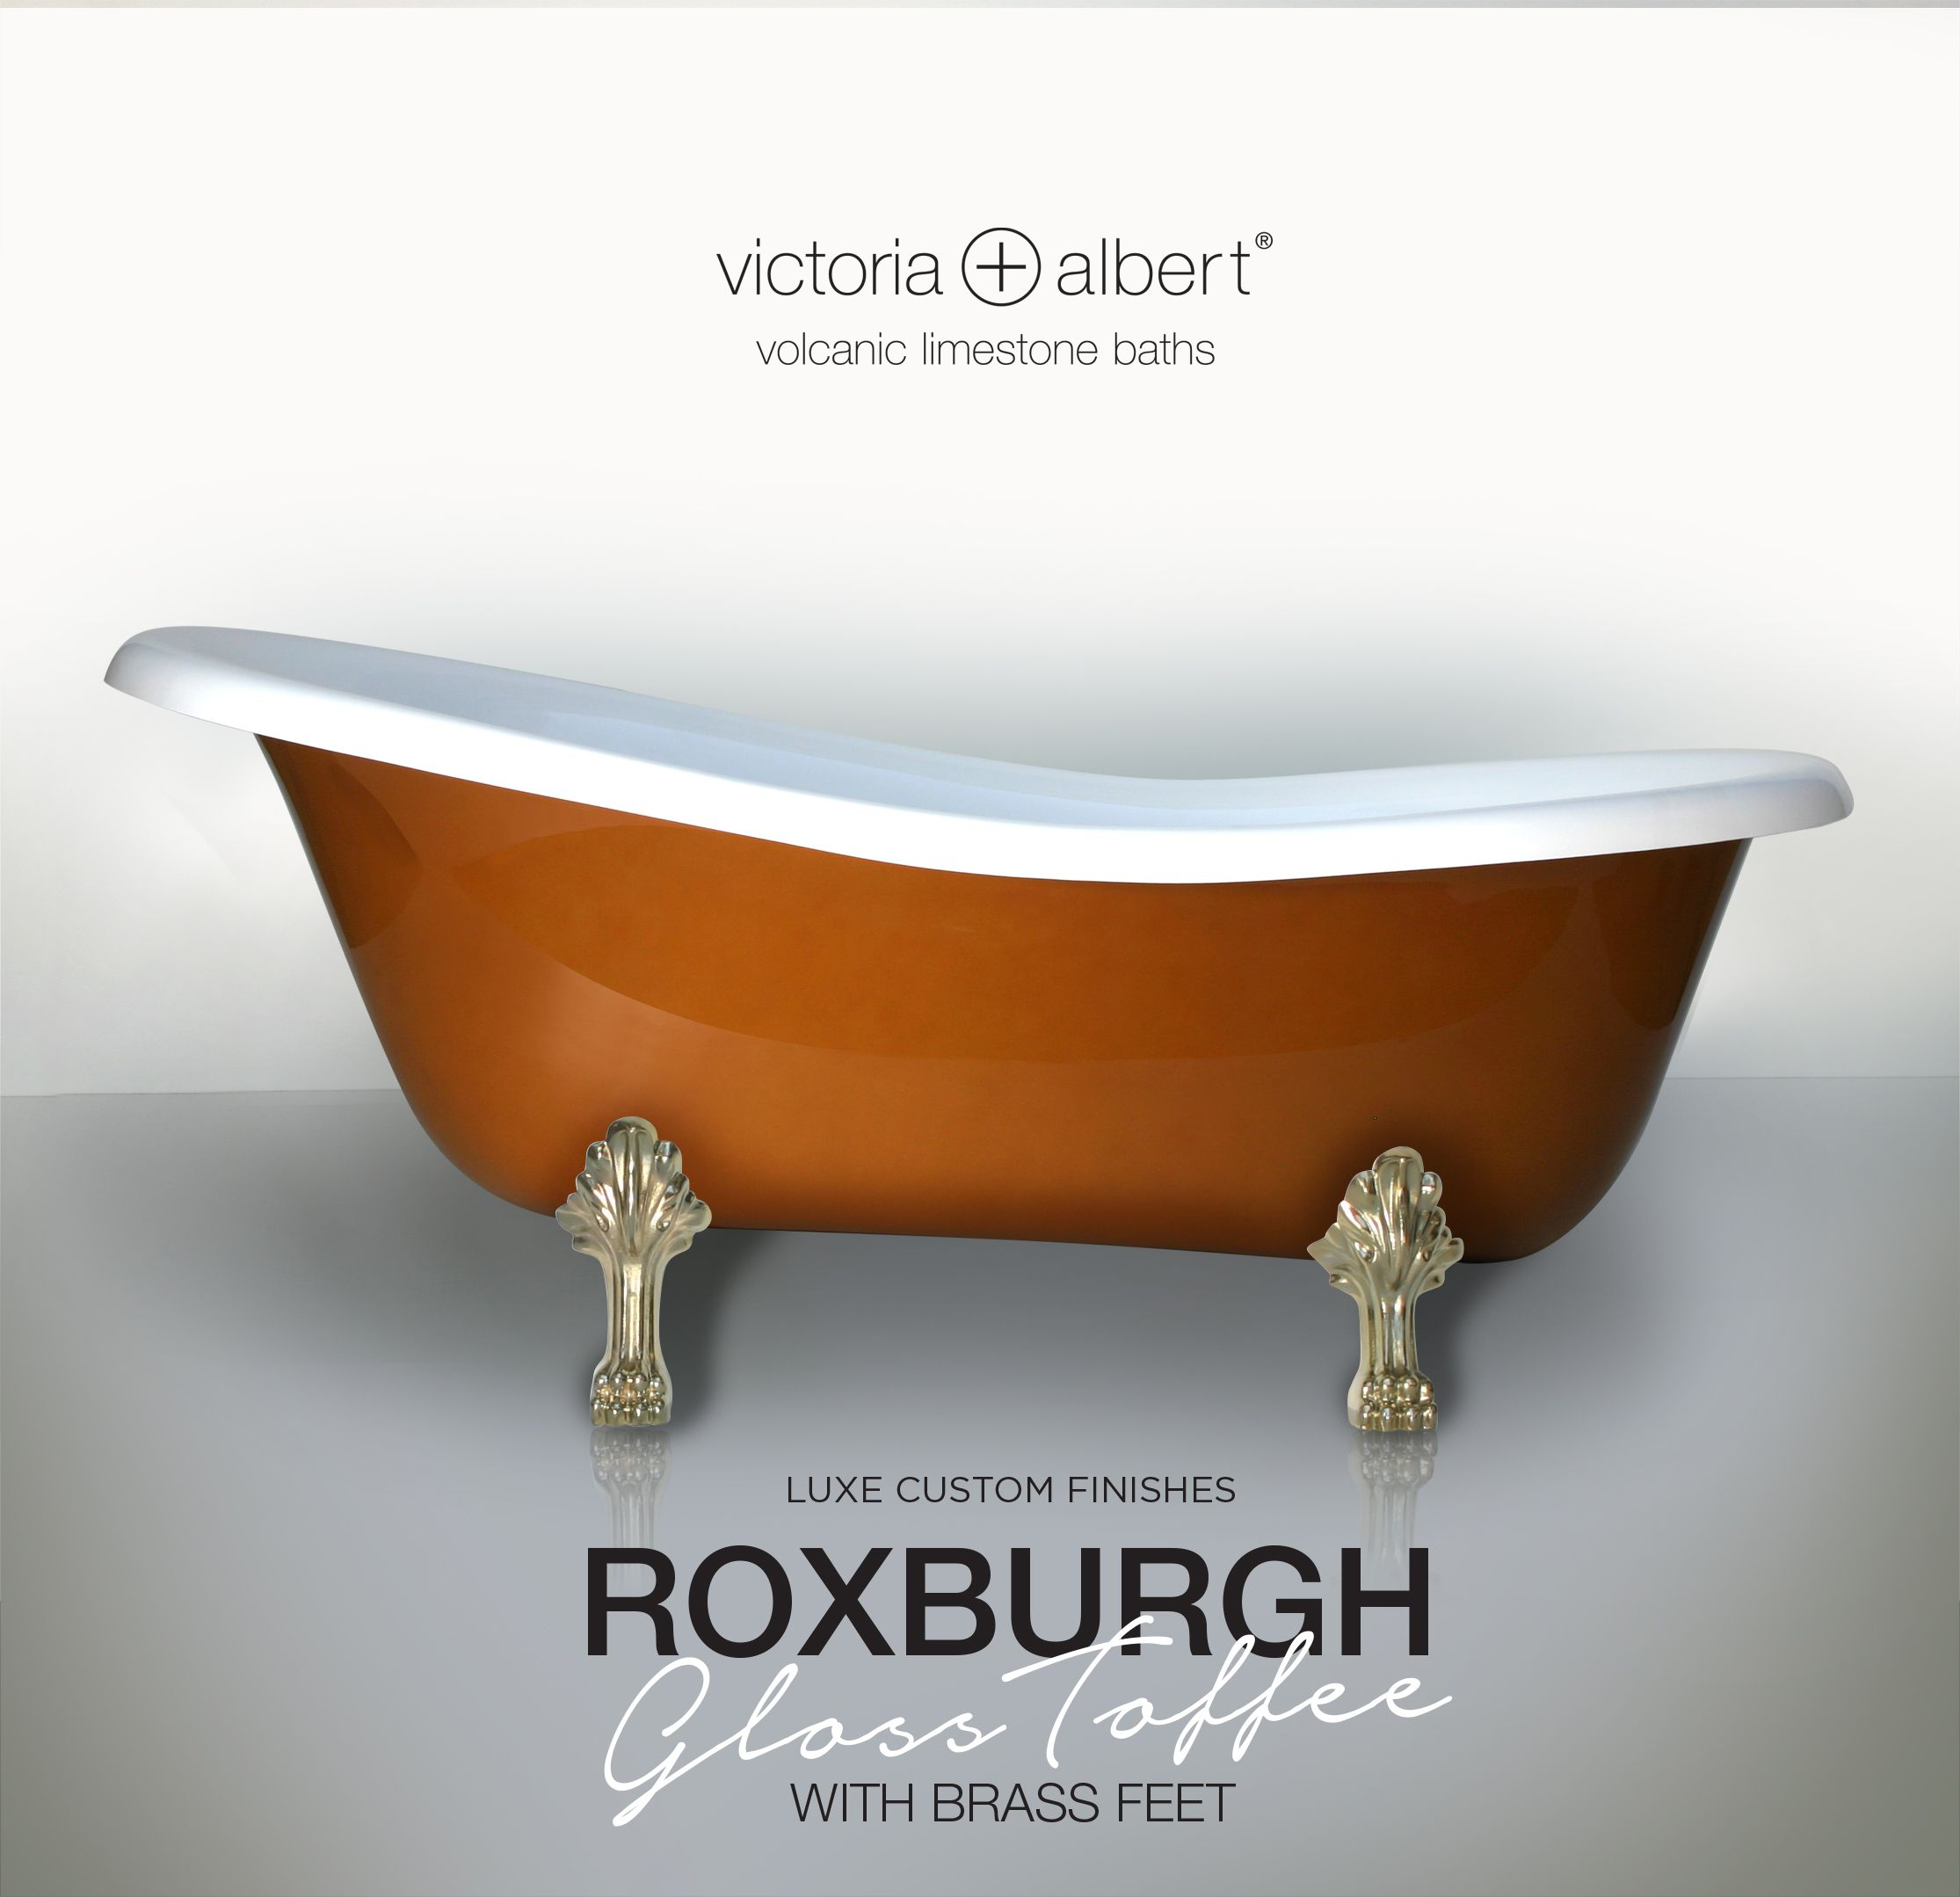 Luxe Custom Finishes Victoria + Albert Roxburgh claw foot bath in ...